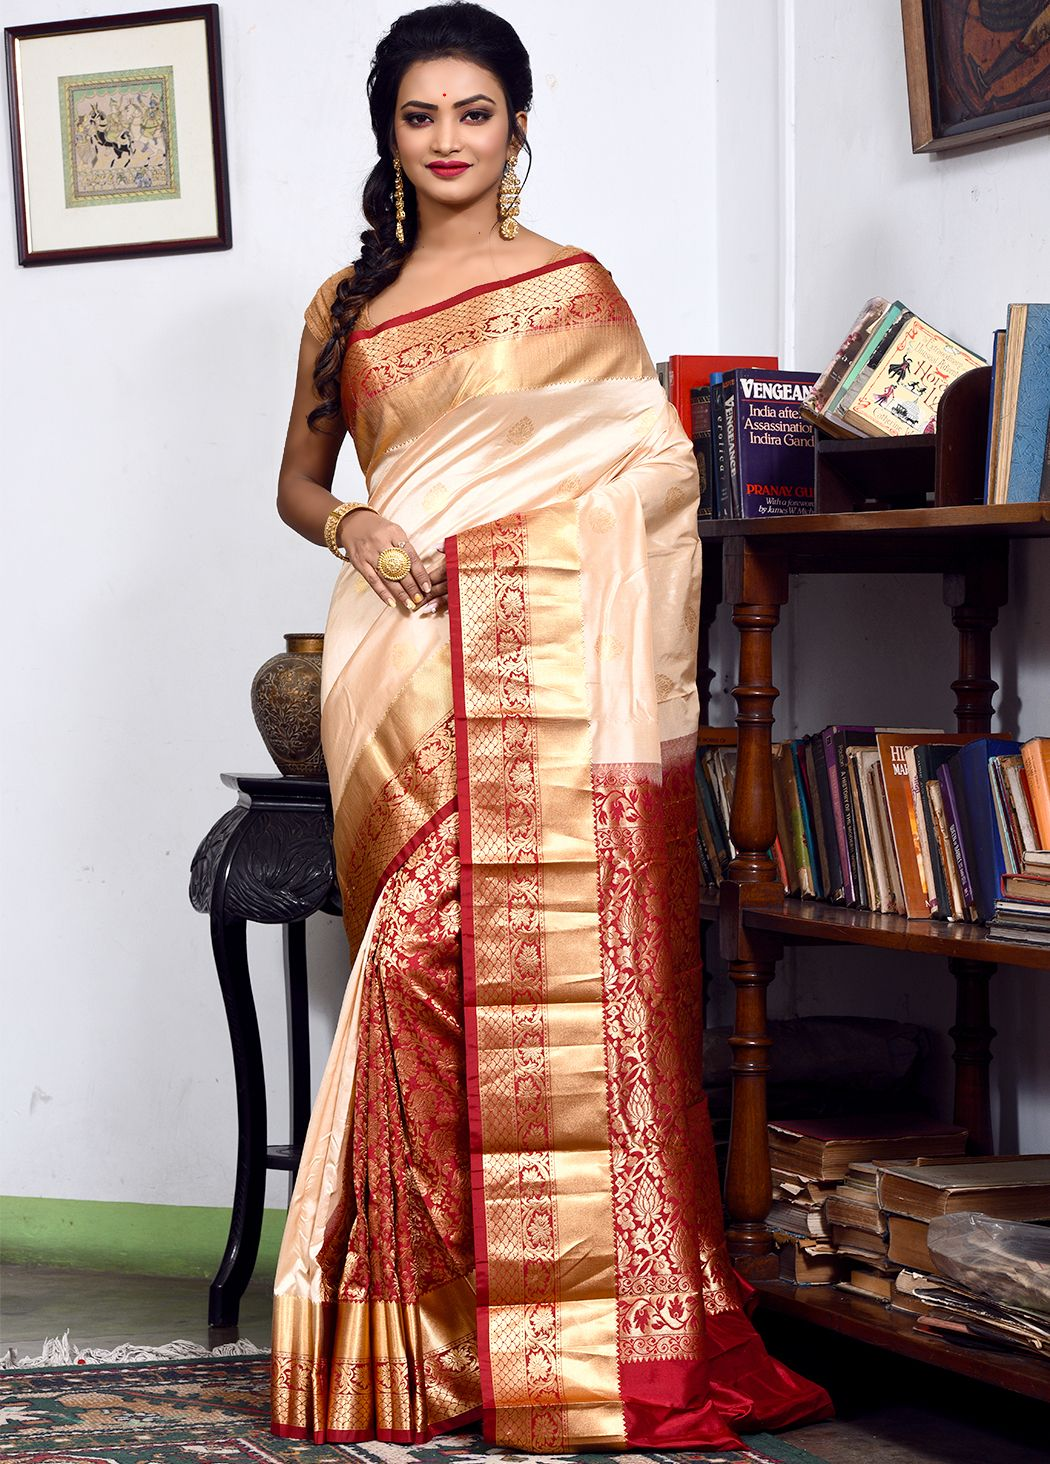 e2f70421fe Cream and red pure kanjivaram silk saree patli pallu saree enhanced with  zari woven floral and leaf designs, along with motifs. Embellished border  completes ...